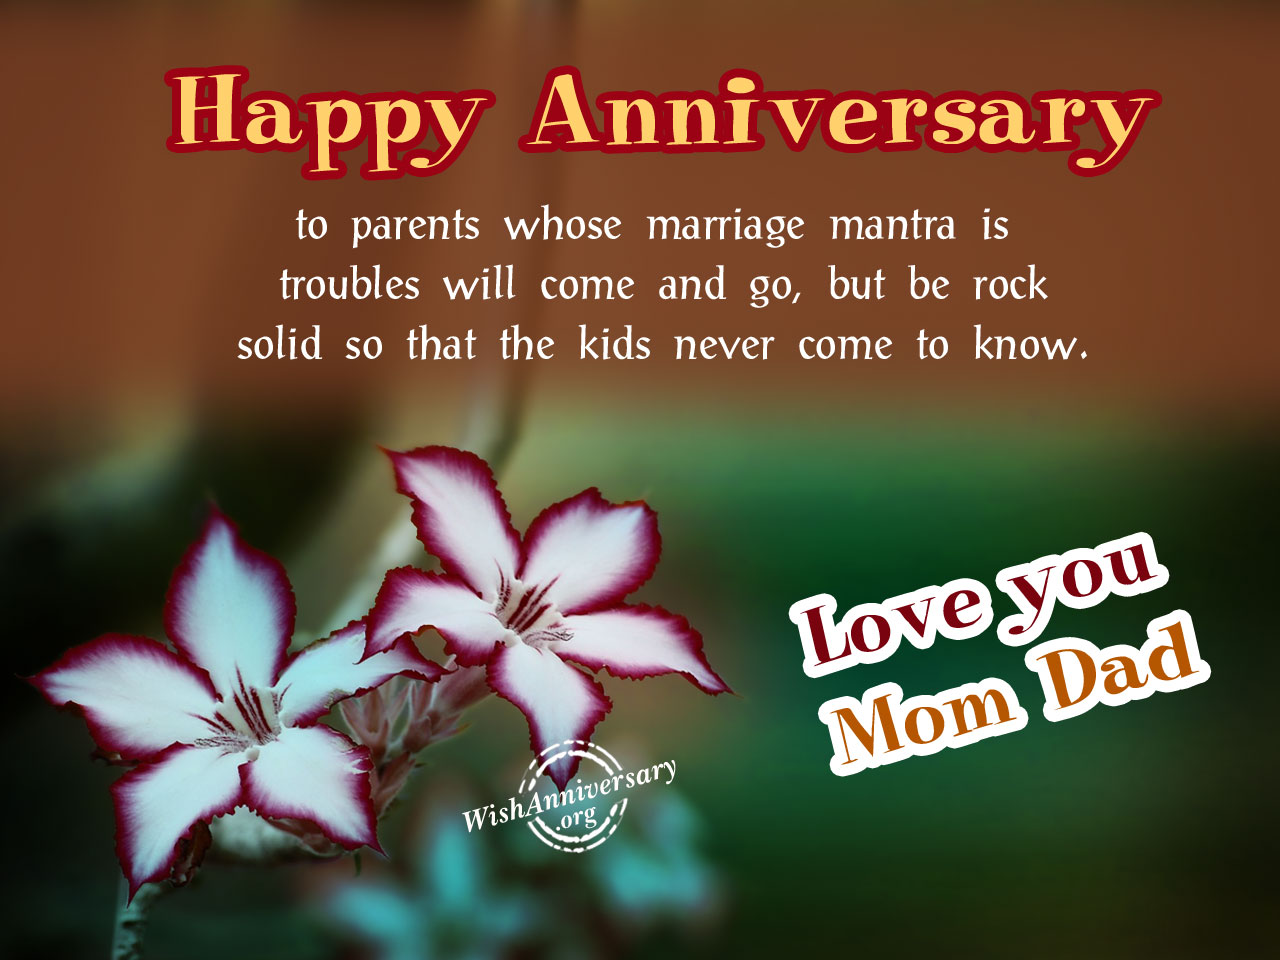 Anniversary wishes ecards images page